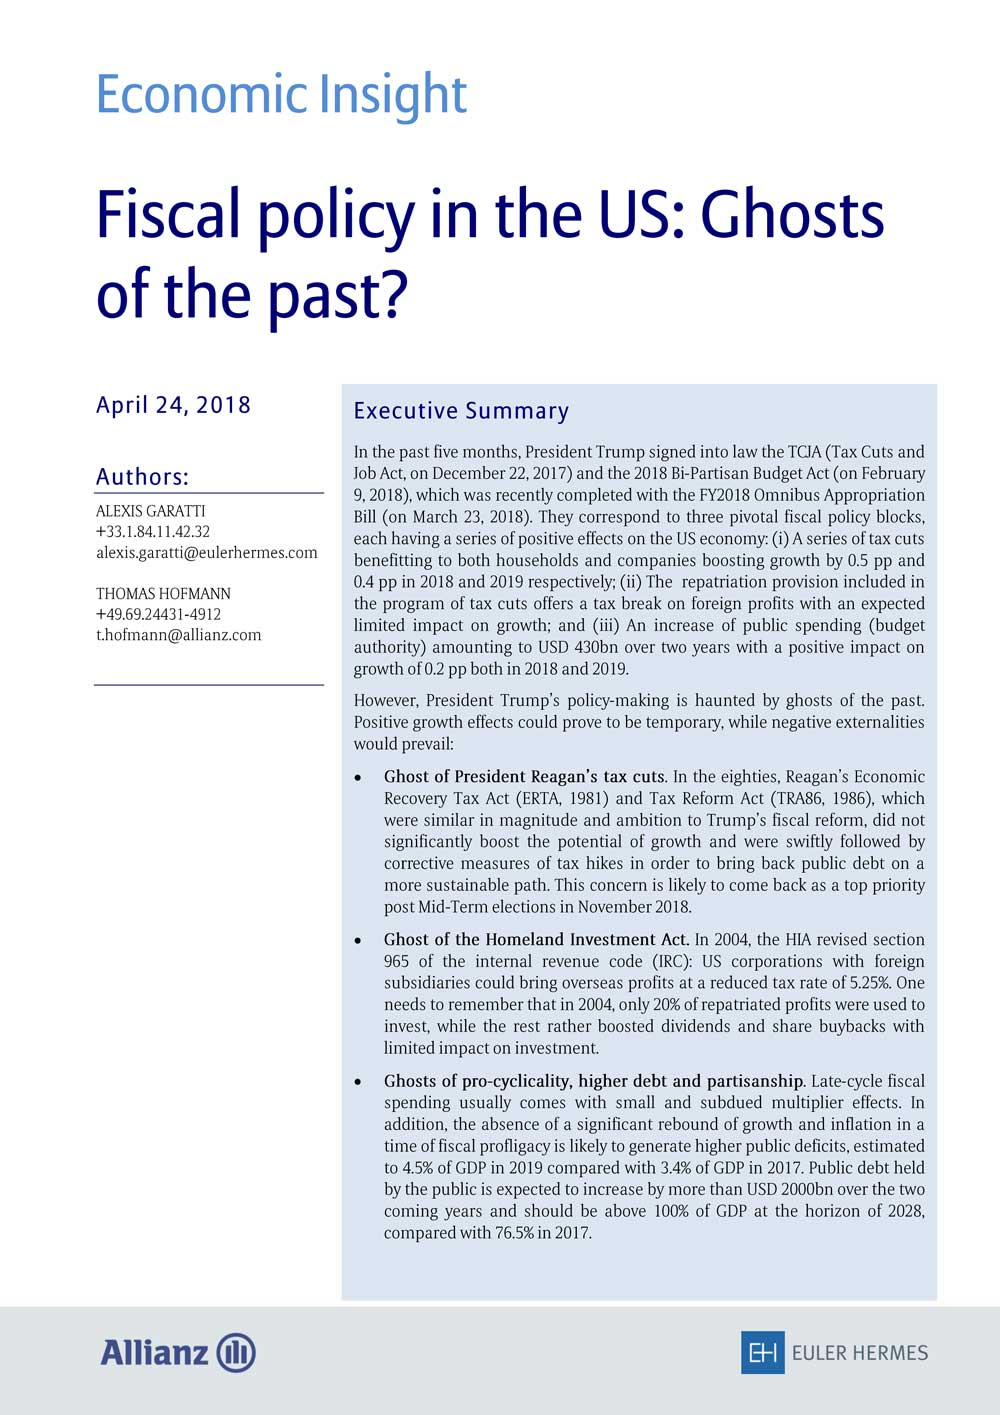 Fiscal policy in the US: Ghosts of the past?